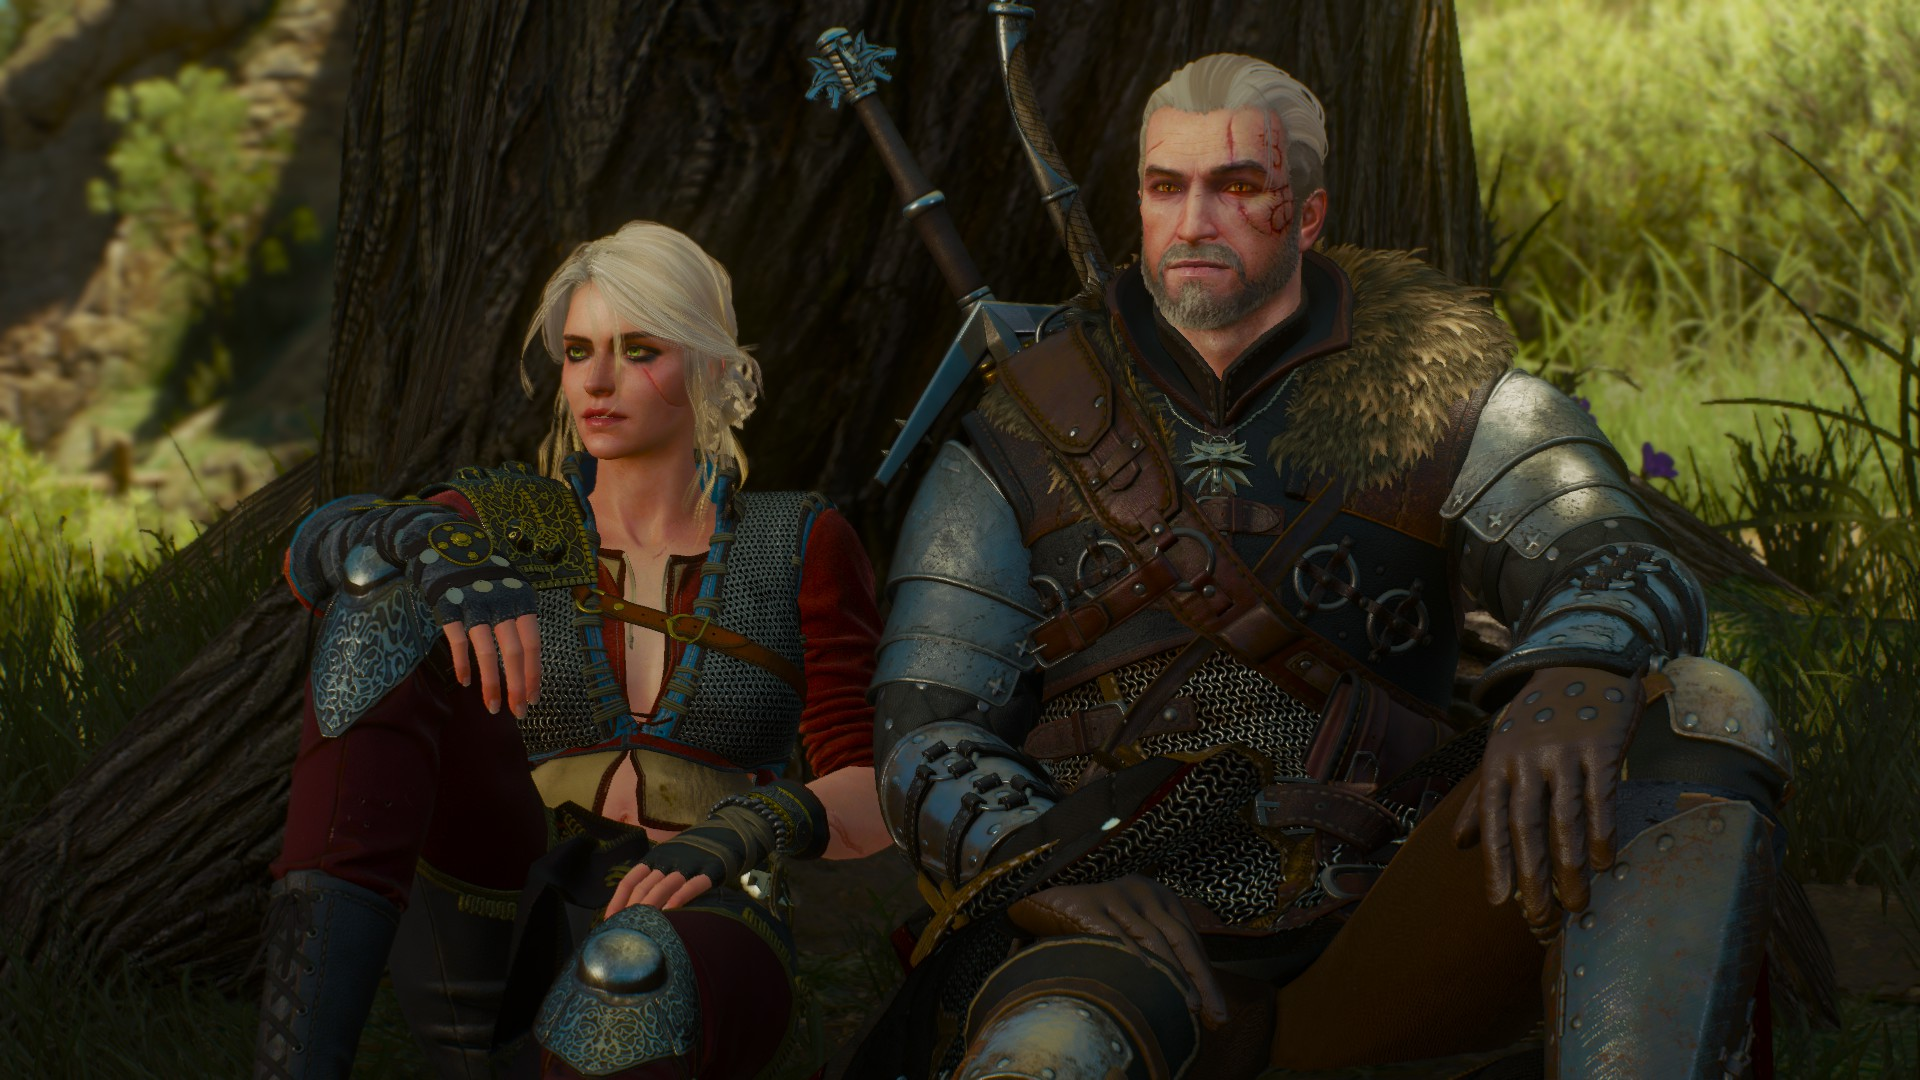 Pumped-my-settings-to-the-max-for-this-WOOOOORTHHH-IIIIITTTTT-1920x1080-TheWitcher-PS-WILD-wallpaper-wpc5808257